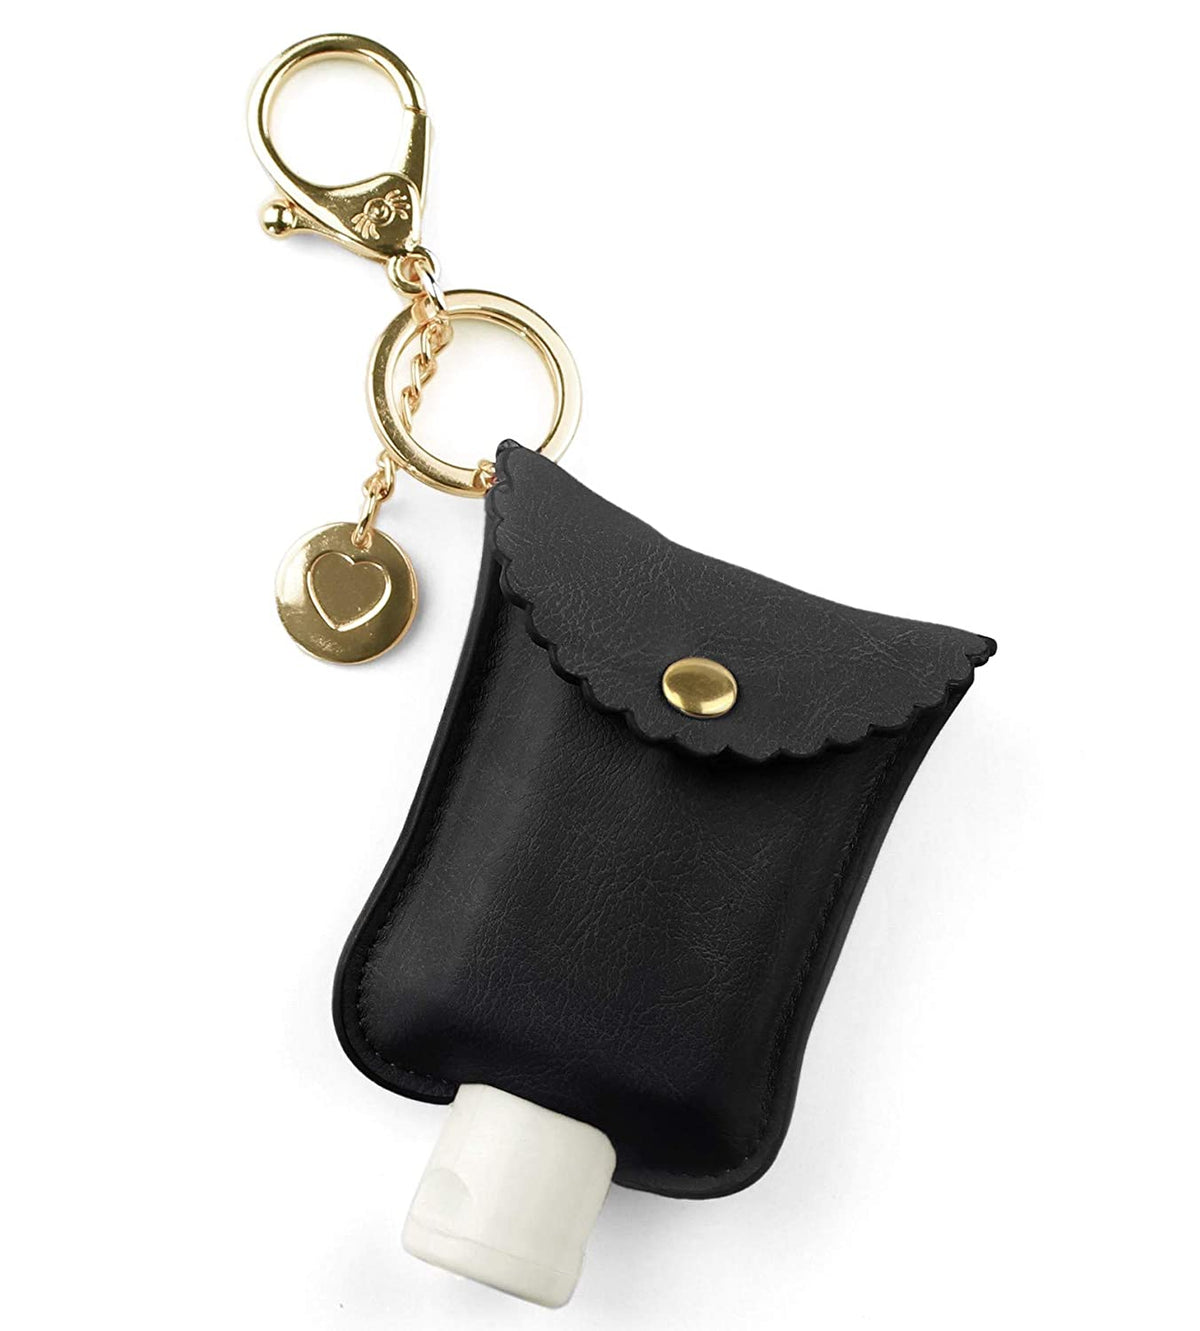 Hand sanitizer pouch - Daily Disco